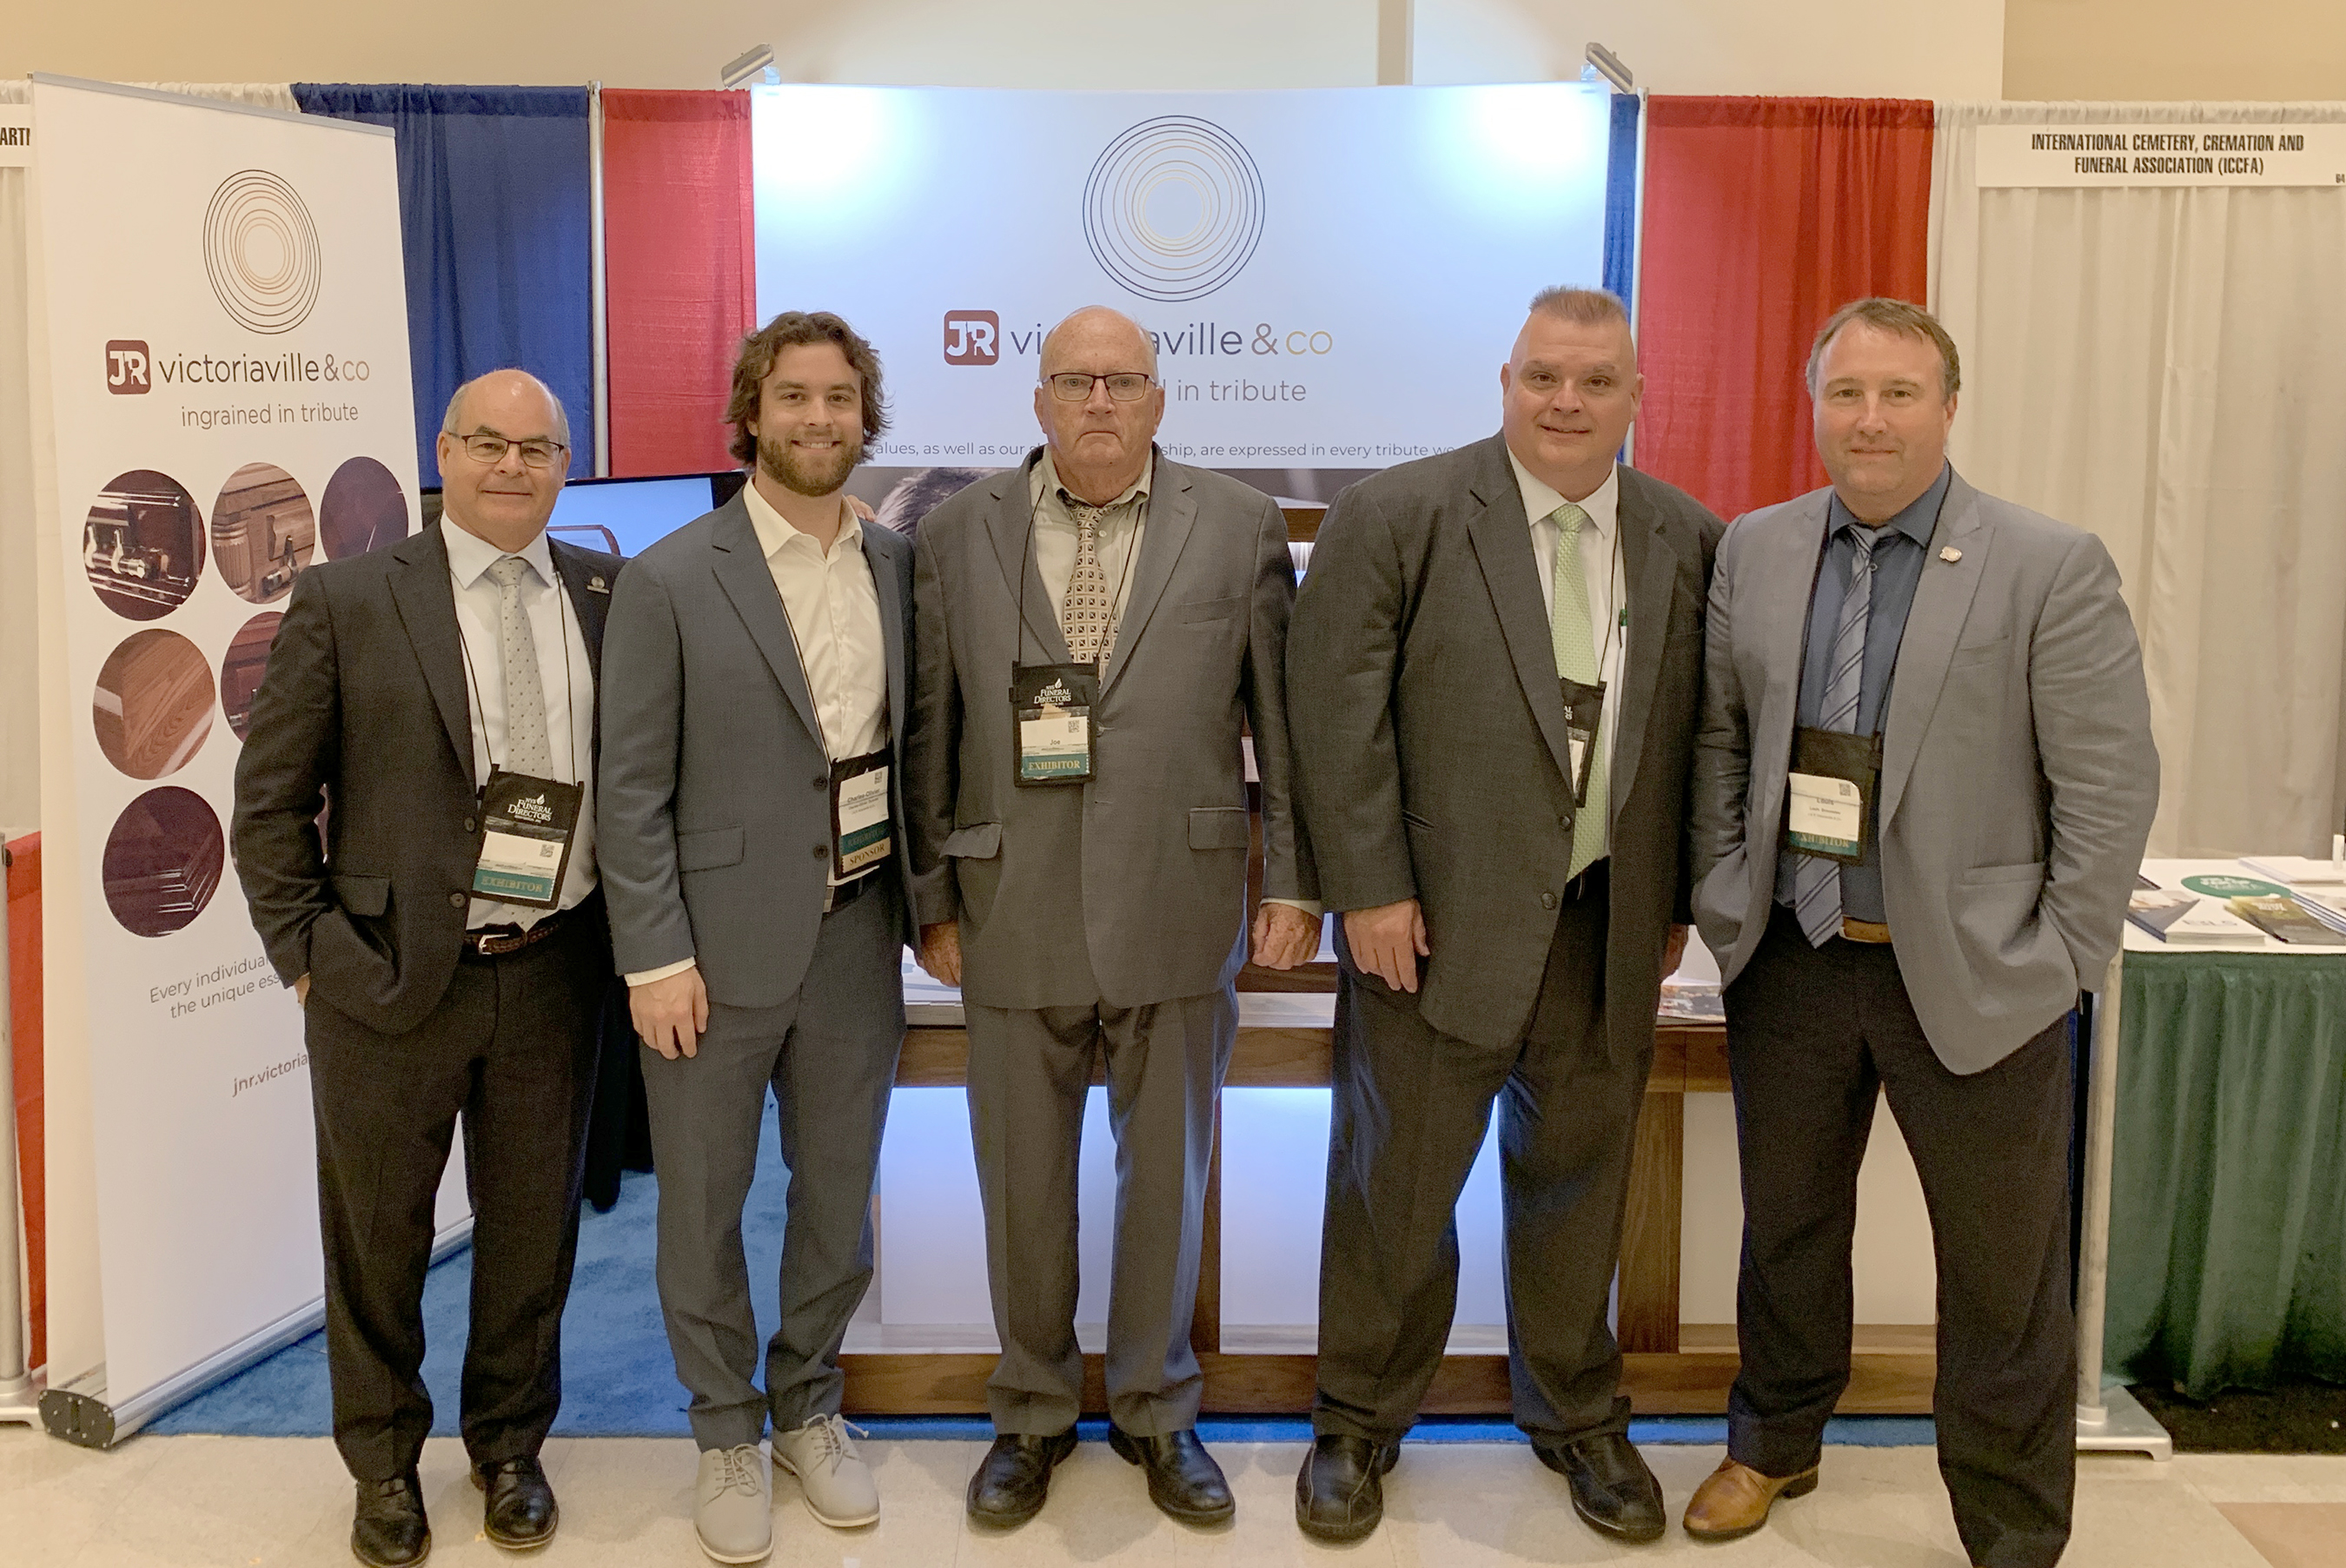 J&R Victoriaville was a proud first time Exhibitor at the NYSFDA in Saratoga Springs